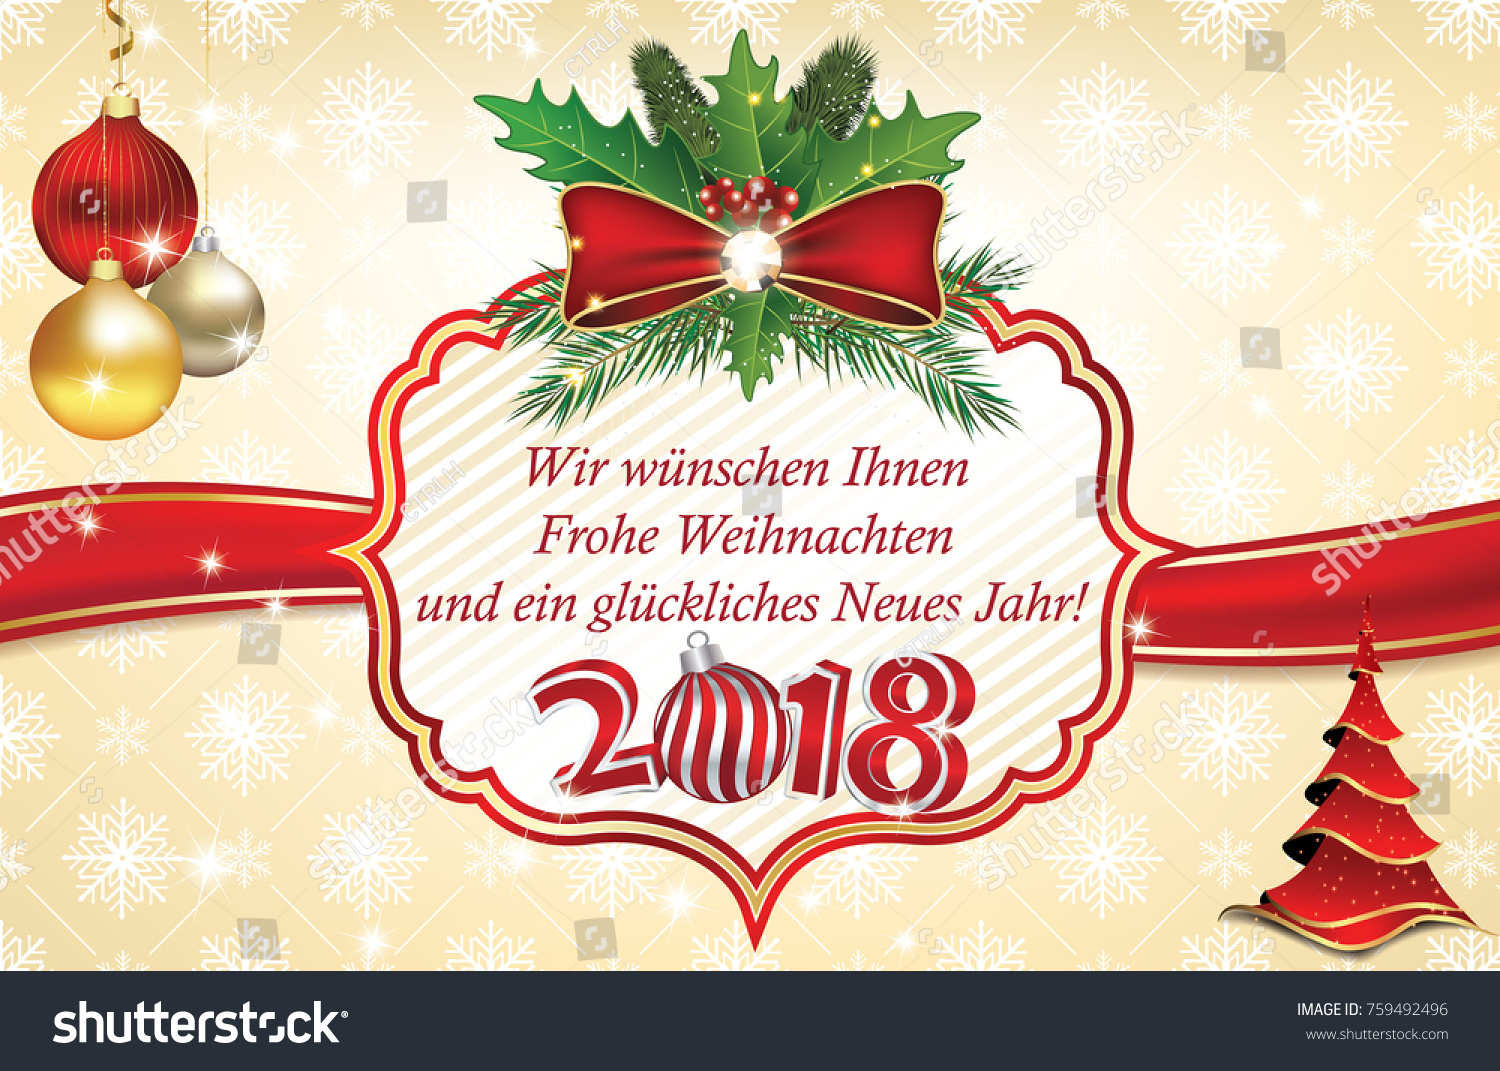 2018 christmas new year greeting card designed for the german speaking clients text translation